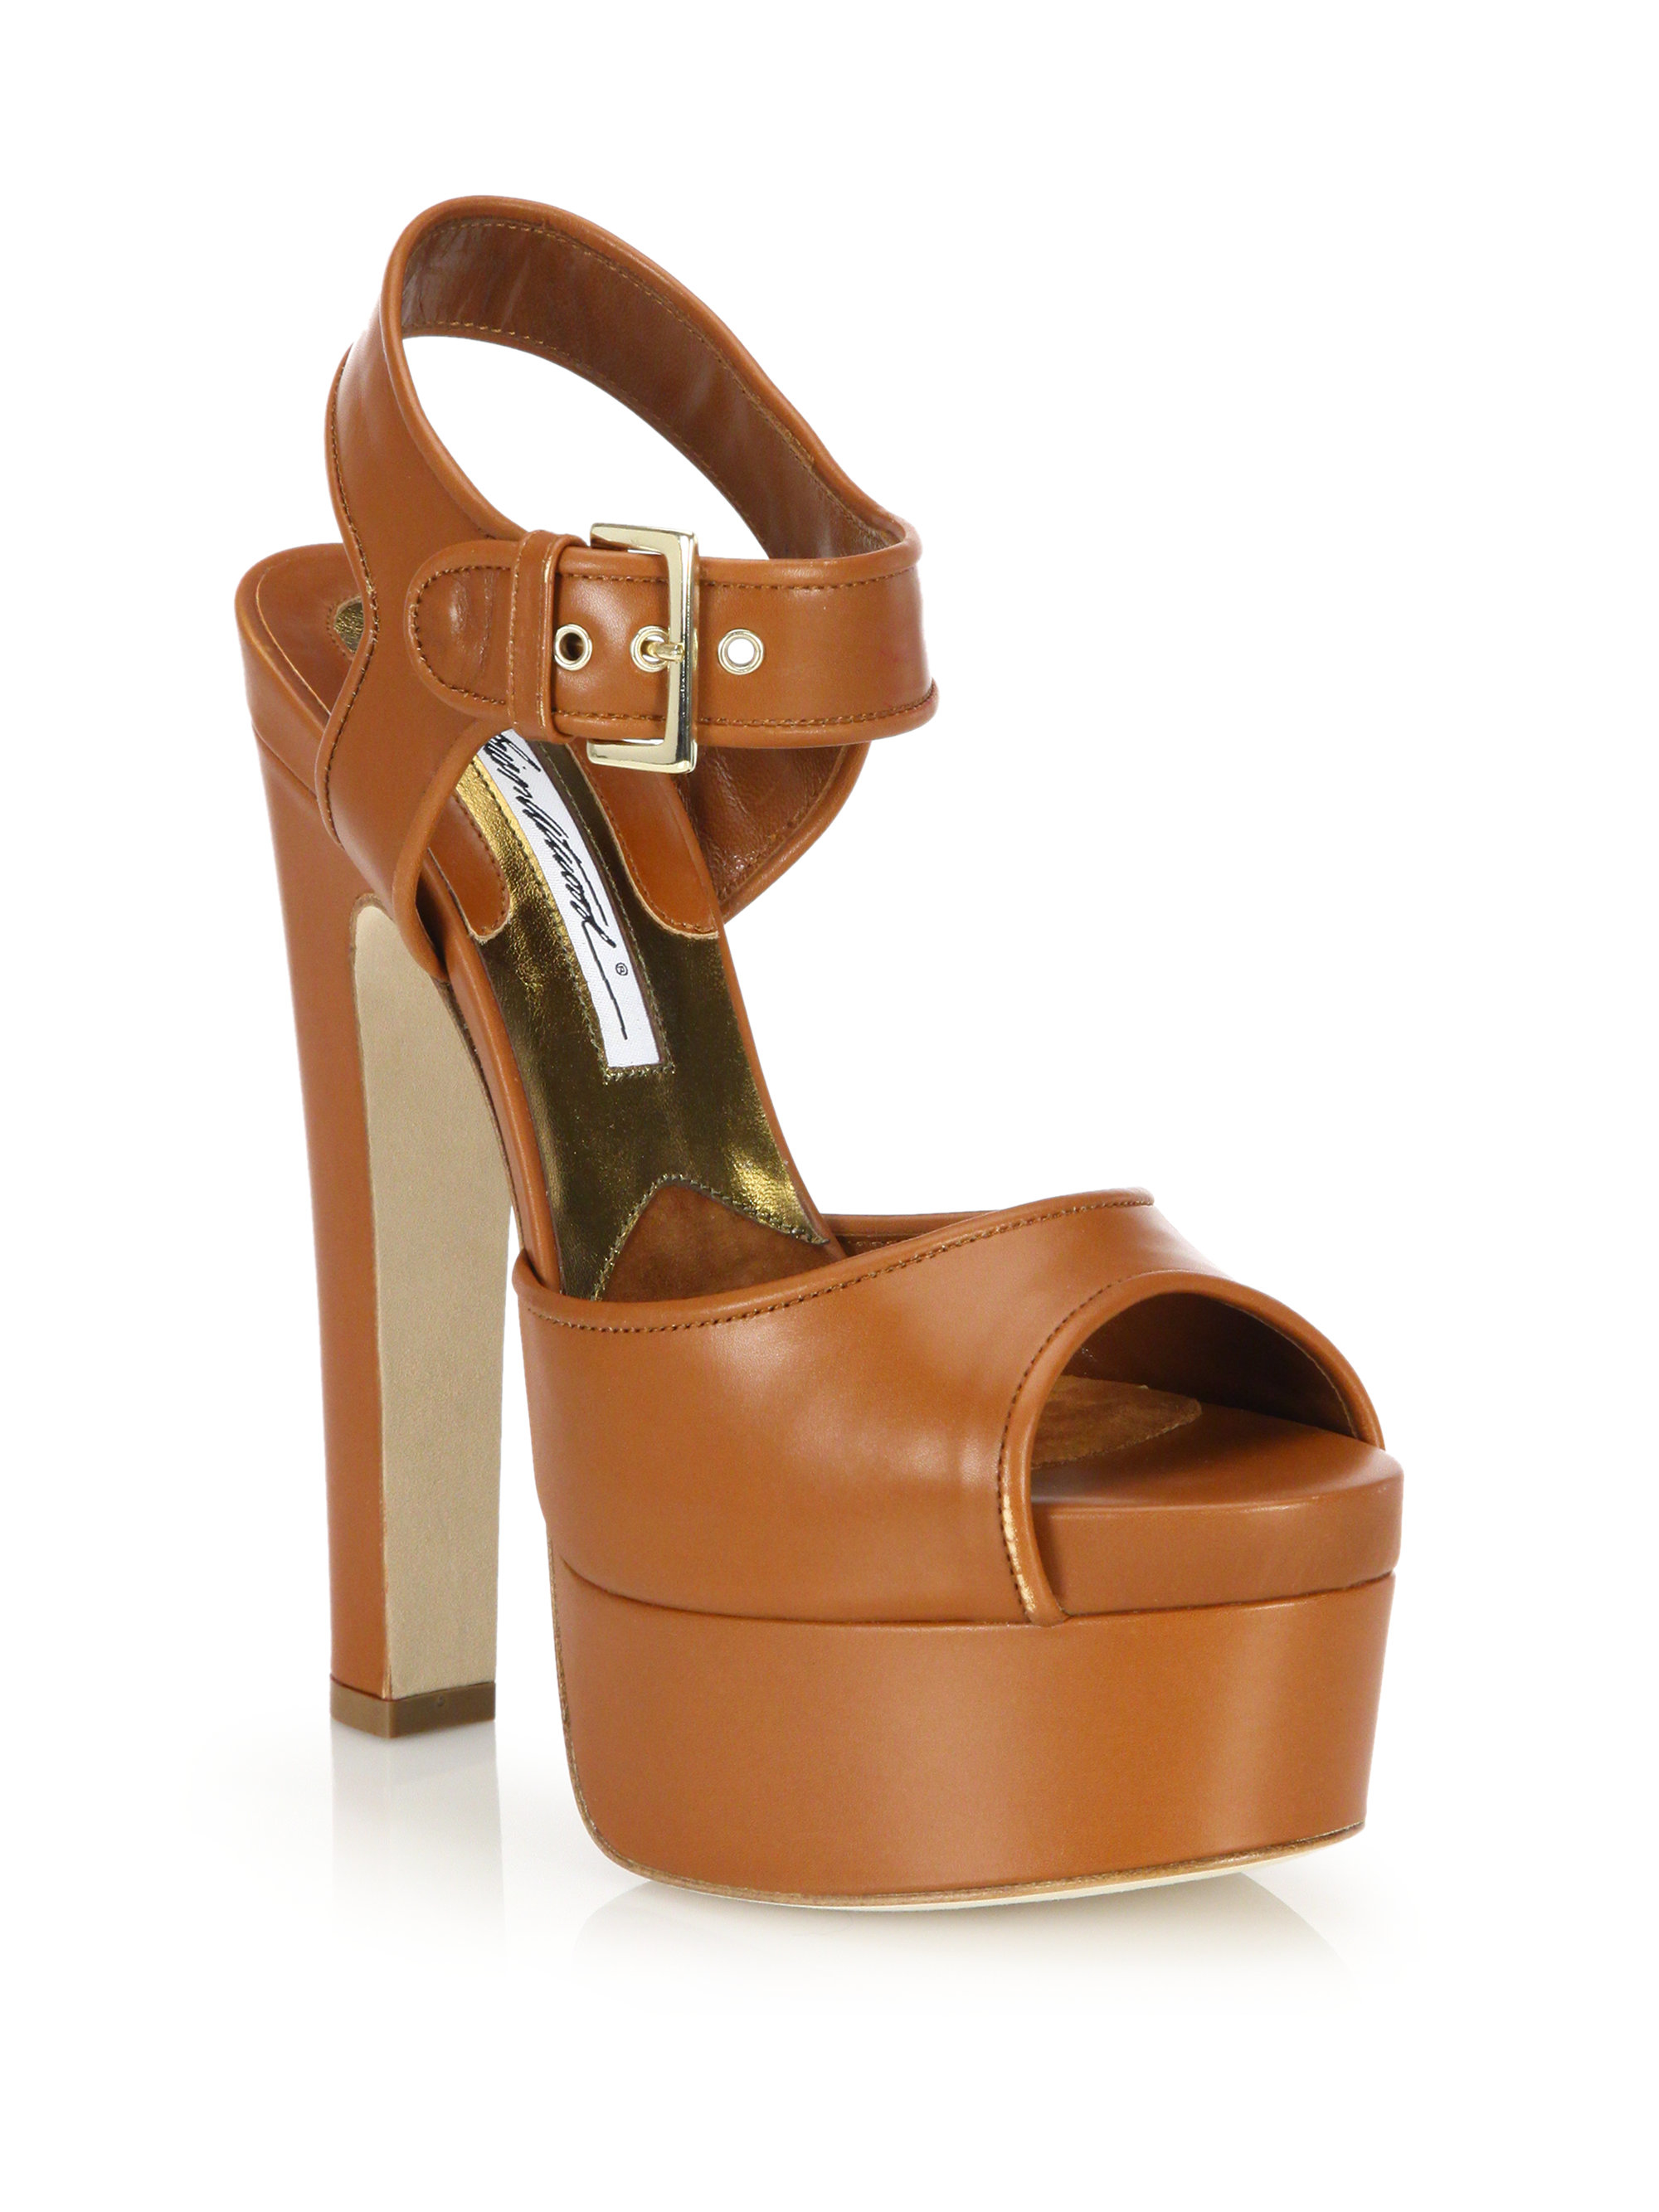 d78dbd31a2a Lyst - Brian Atwood Karin Leather Platform Sandals in Brown